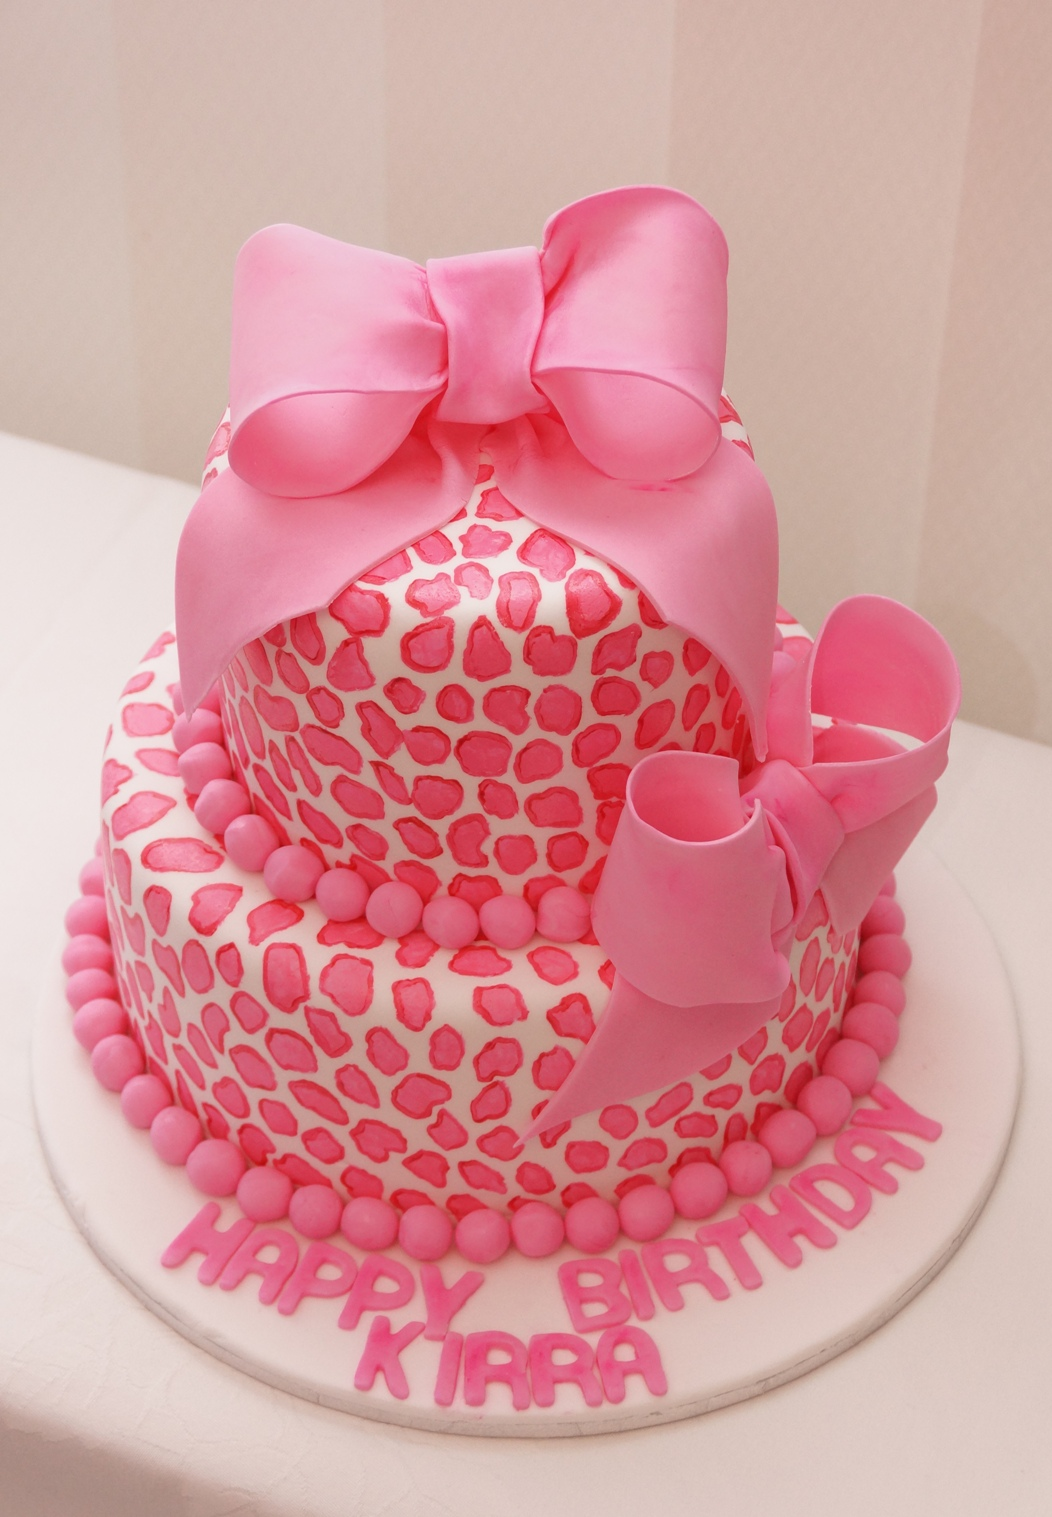 Cakeit4U birthday cake